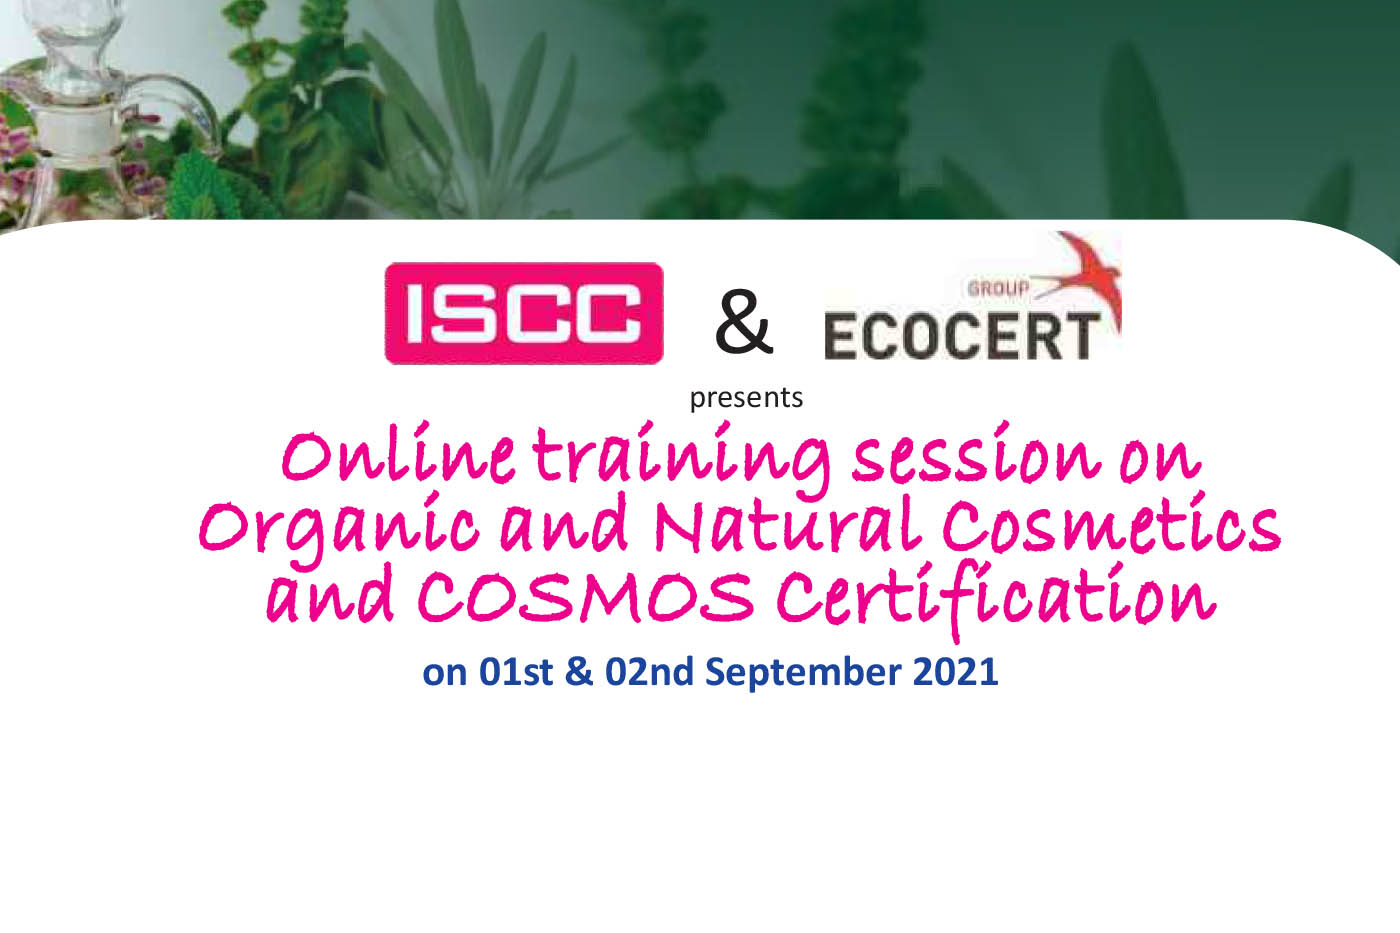 ISCC & ECOCERT present online training on Organic & Natural Cosmetics and COSMOS certification